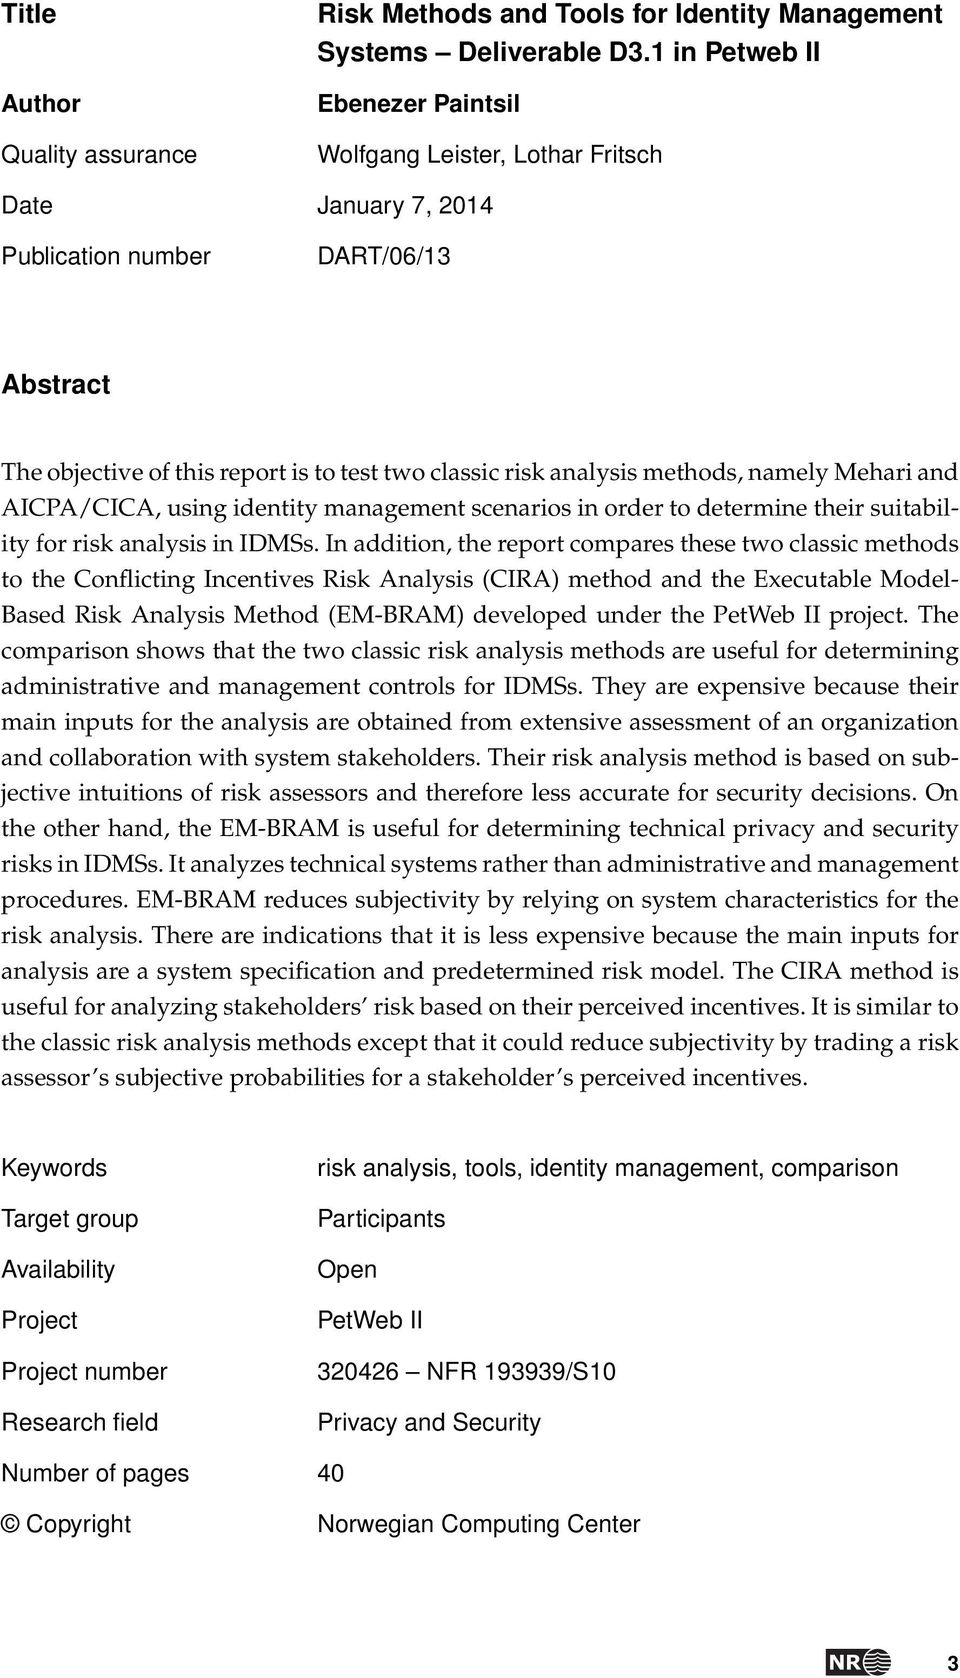 methods, namely Mehari and AICPA/CICA, using identity management scenarios in order to determine their suitability for risk analysis in IDMSs.